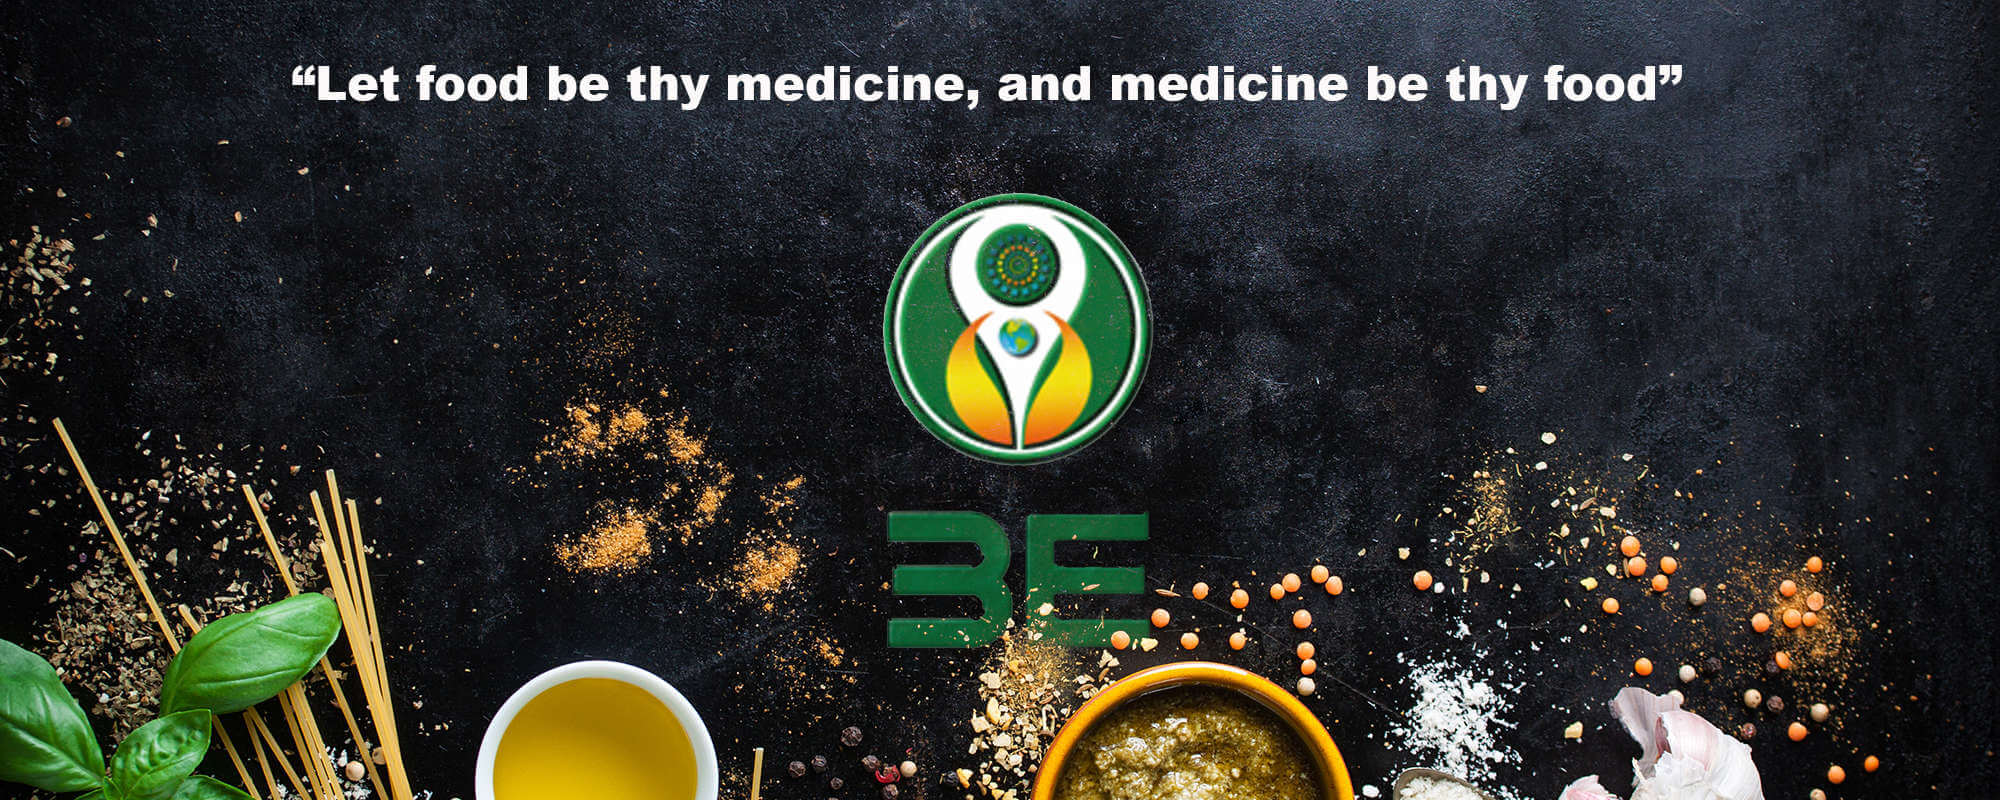 Let food be thy medicine, and medicine by thy food